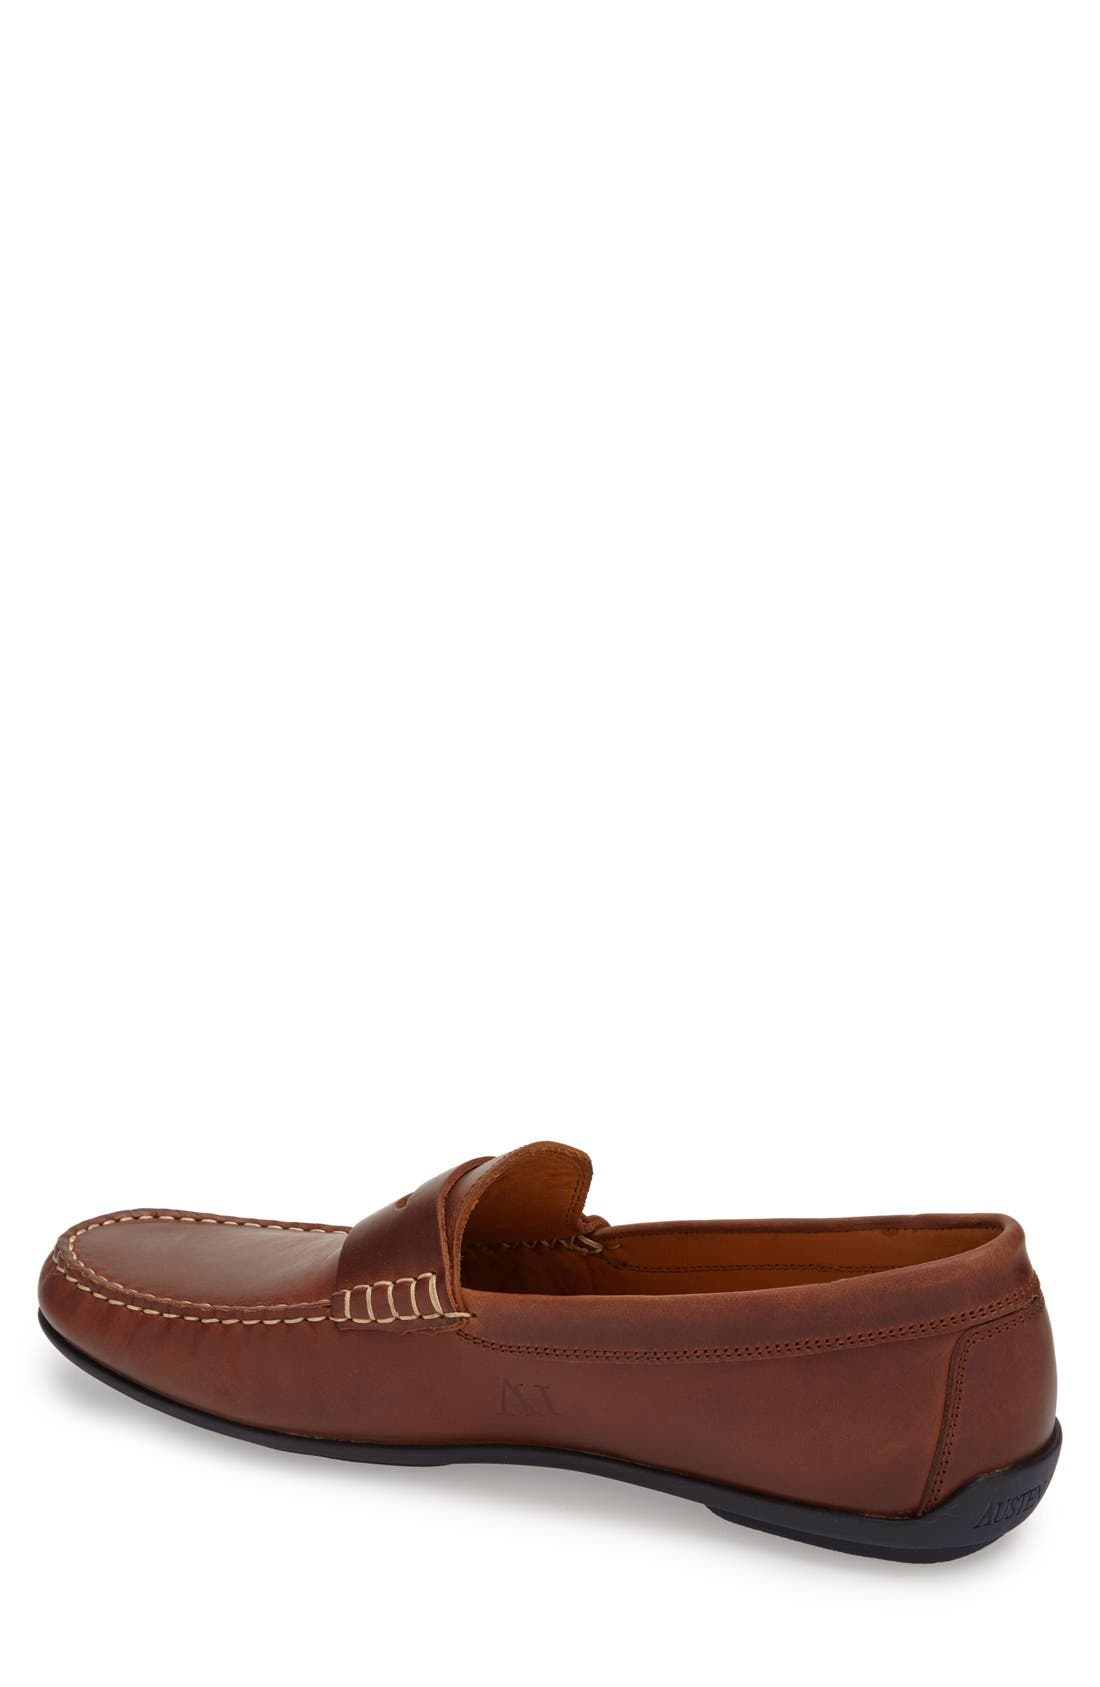 'Clinton' Leather Penny Loafer,                             Alternate thumbnail 10, color,                             LIGHT BROWN